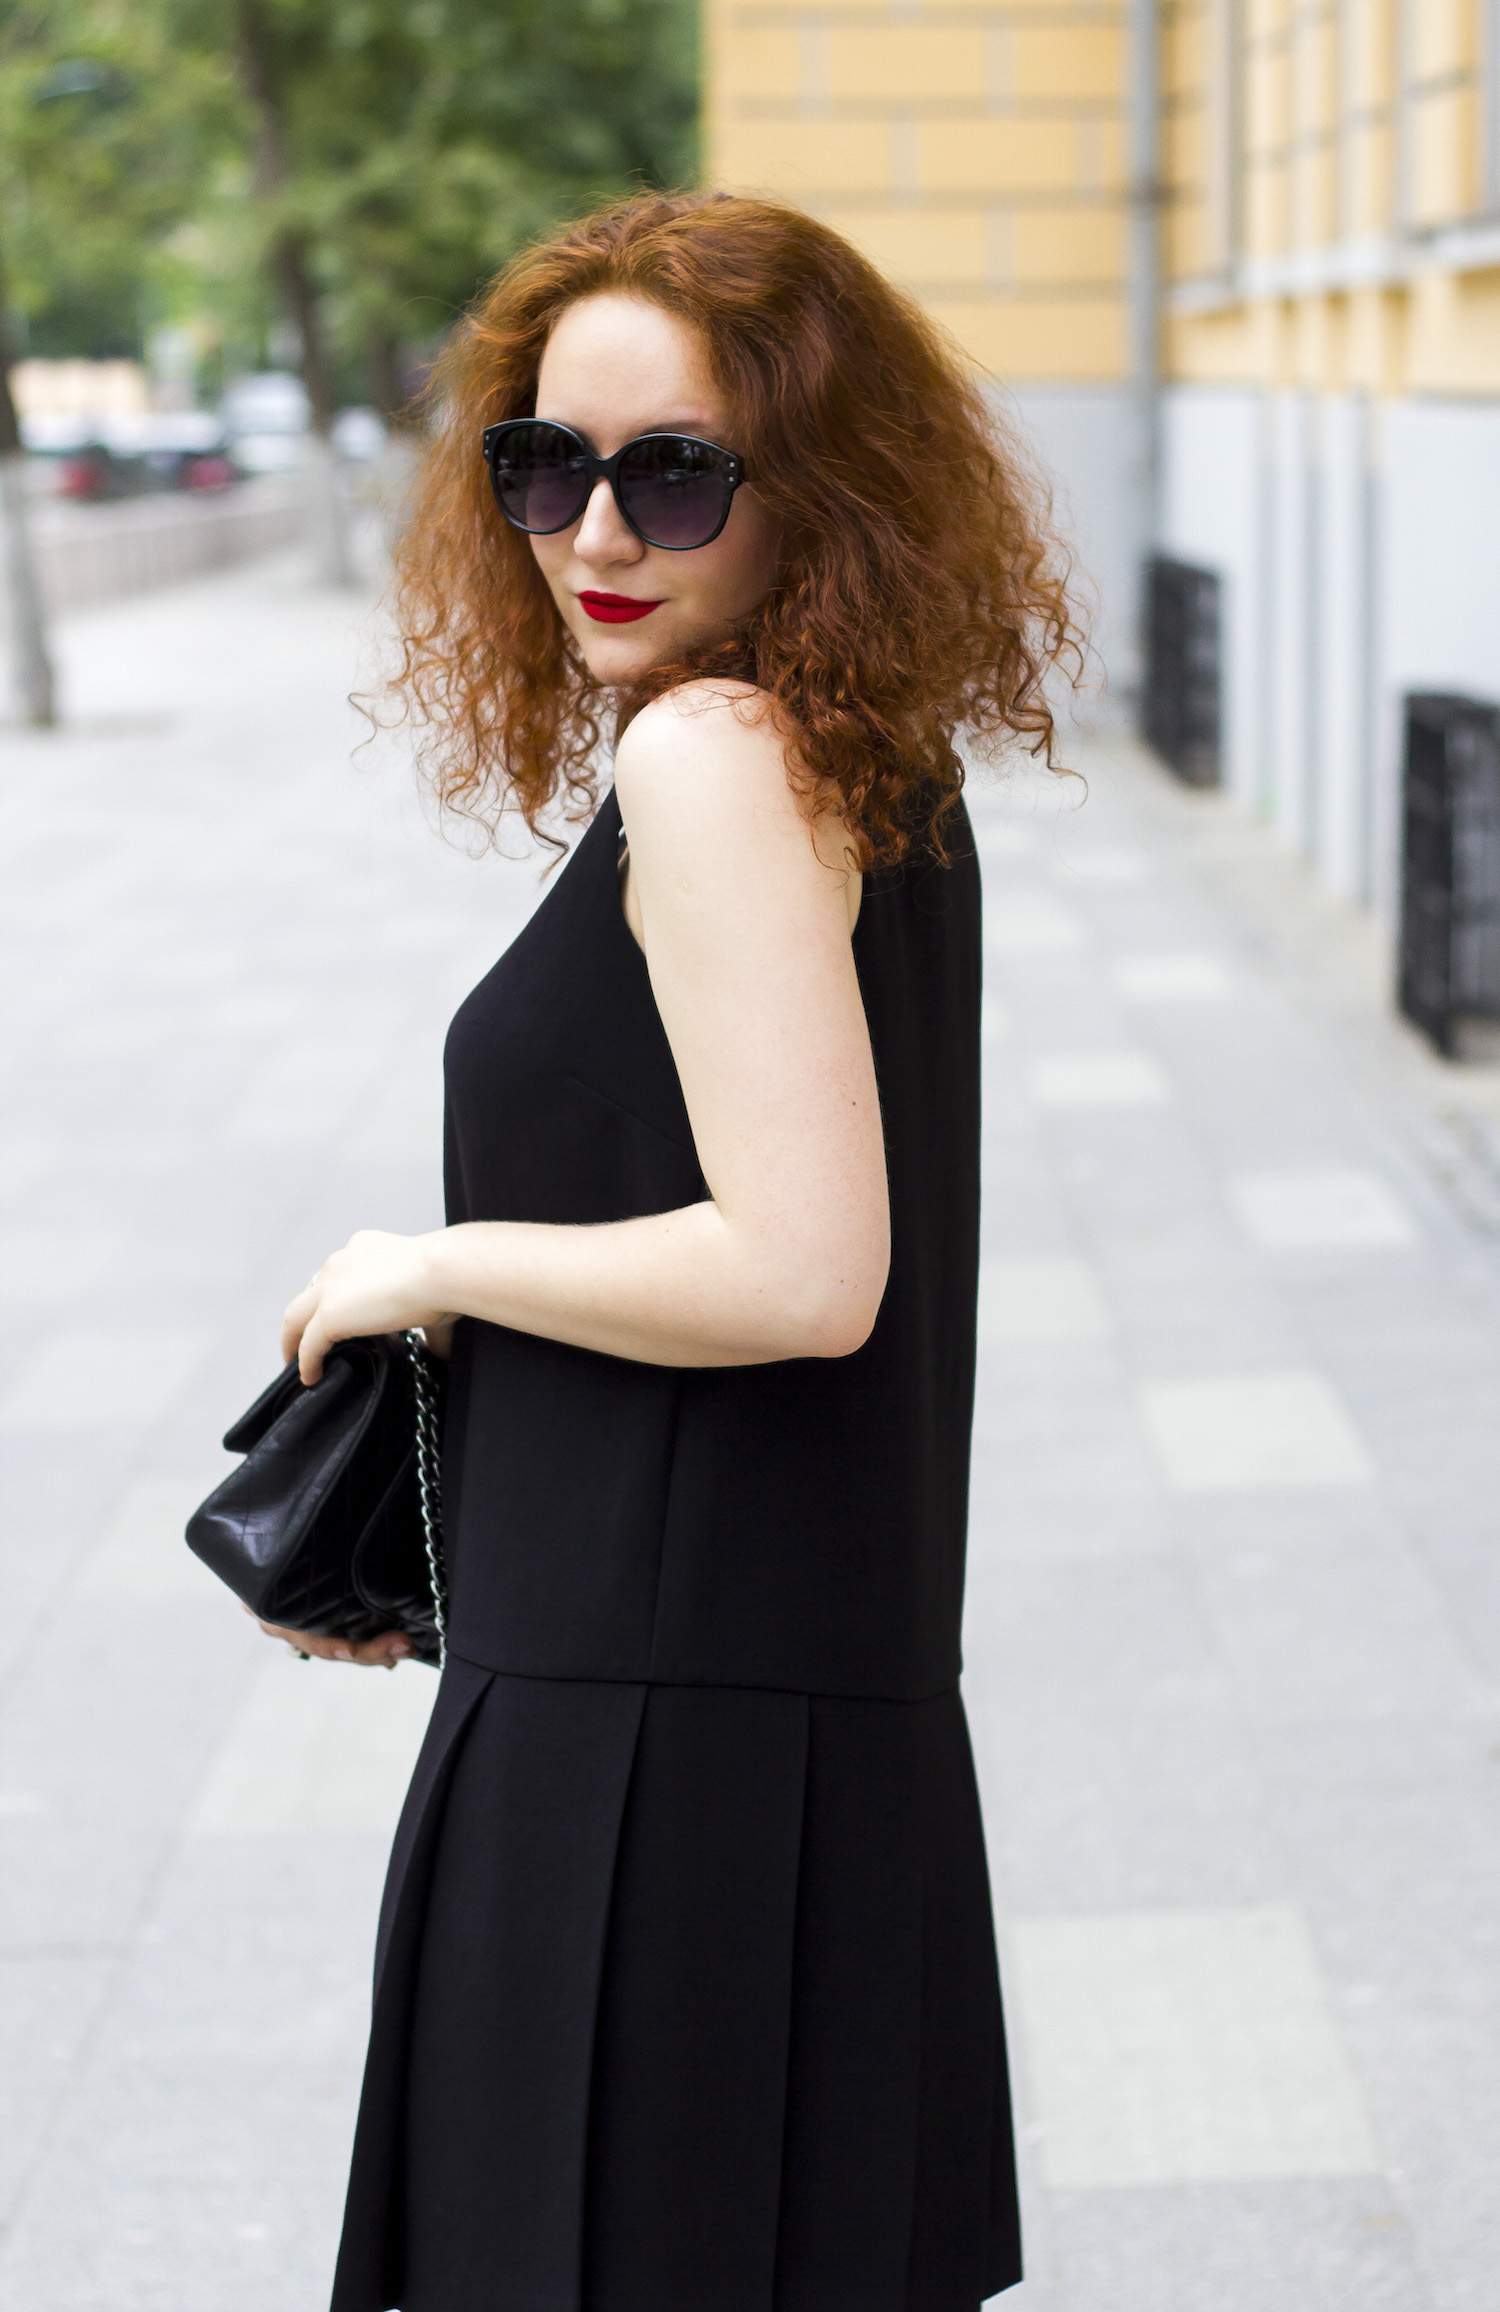 Enn Franco Says, Fashion blog, Street style, Outfit of the day, Marc Jacobs dress, Chanel bag, Prada heels, Pieces sunglasses